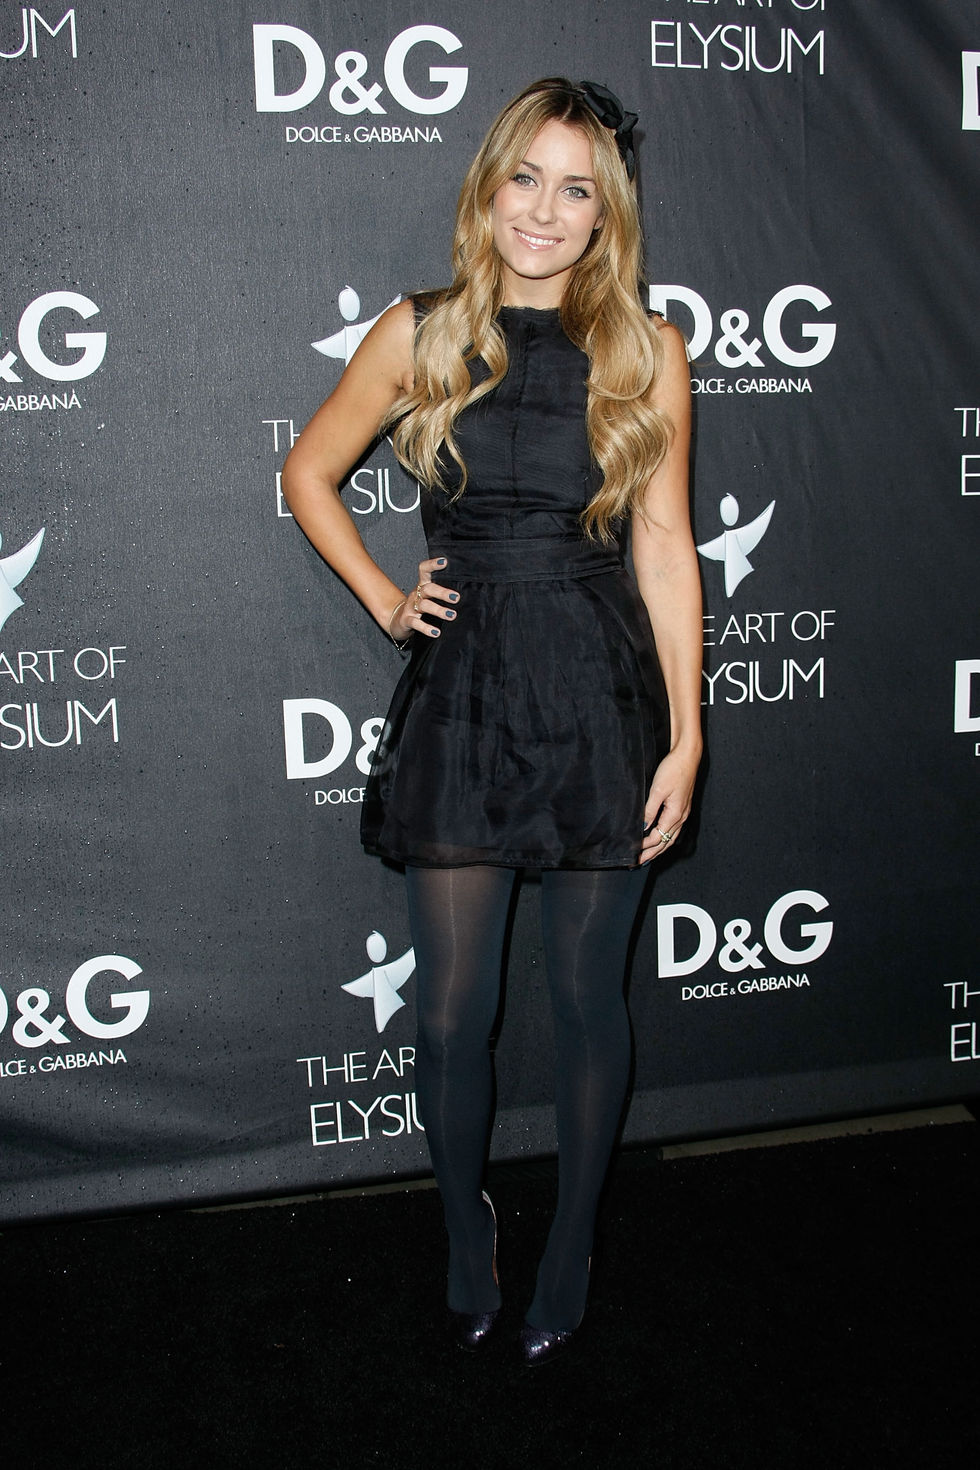 lauren-conrad-dg-flagship-boutique-grand-opening-in-los-angeles-01